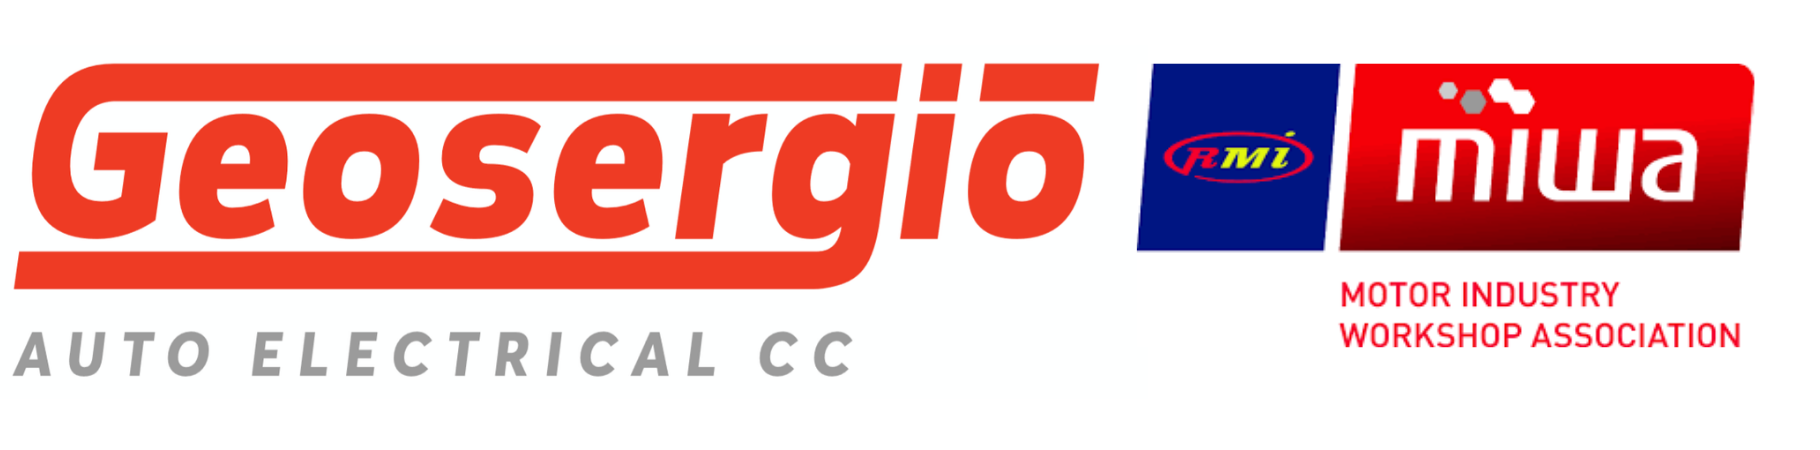 Official Geosergio Auto Electrical Logo